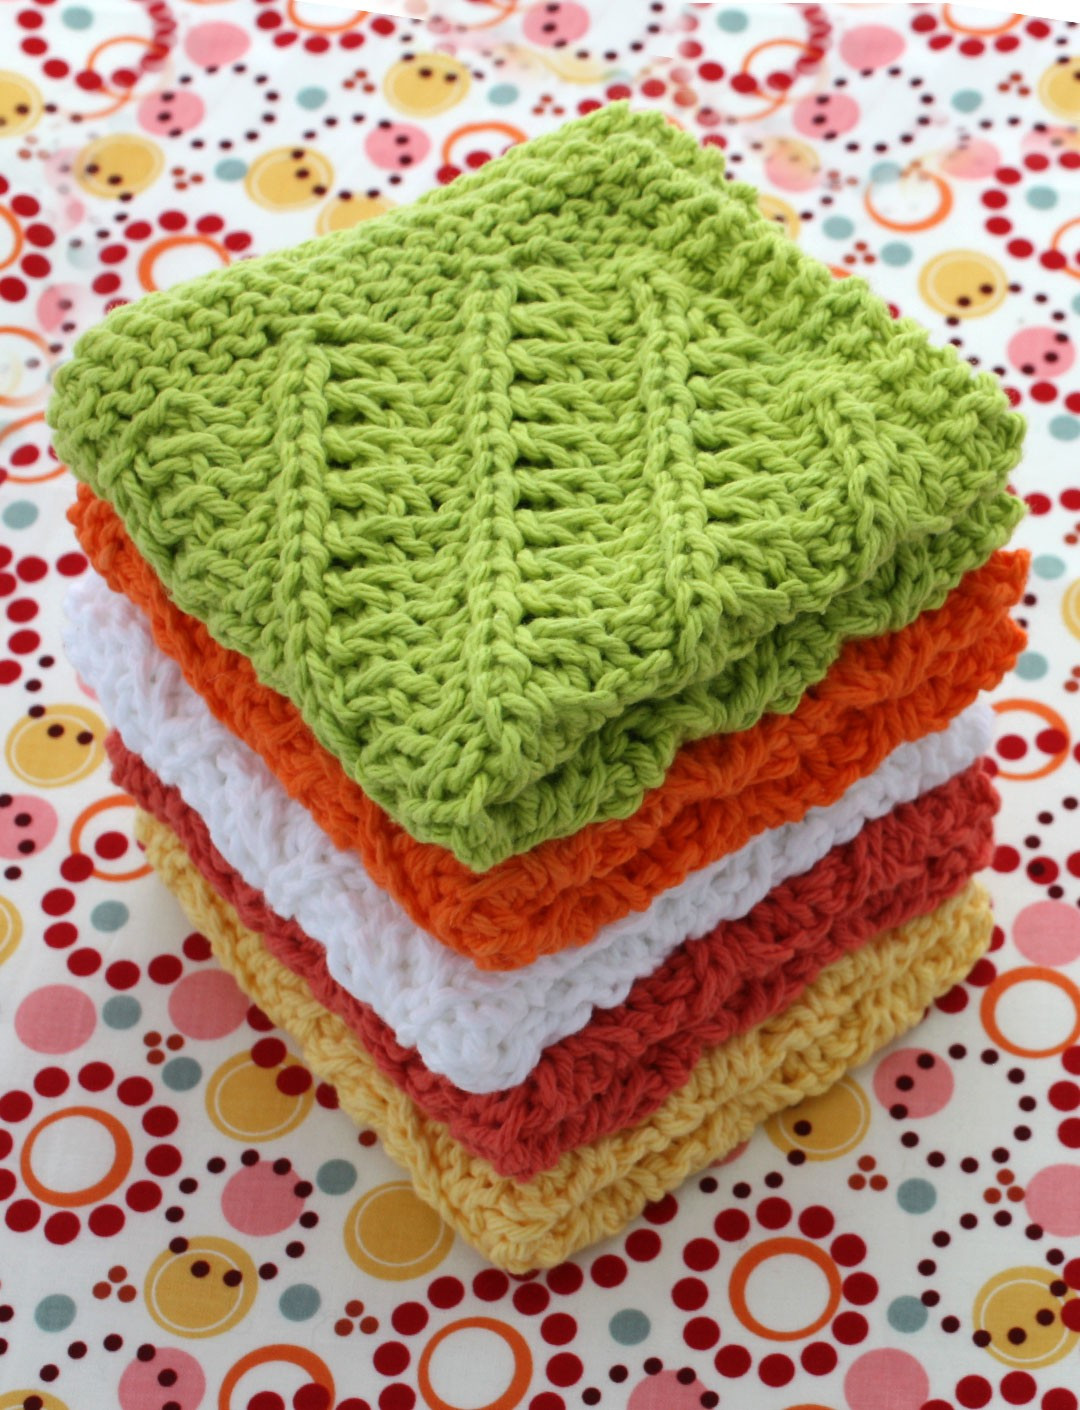 New Lily Diagonal Stitch Dishcloth Knit Pattern Dishcloth Patterns Of Charming 41 Images Dishcloth Patterns